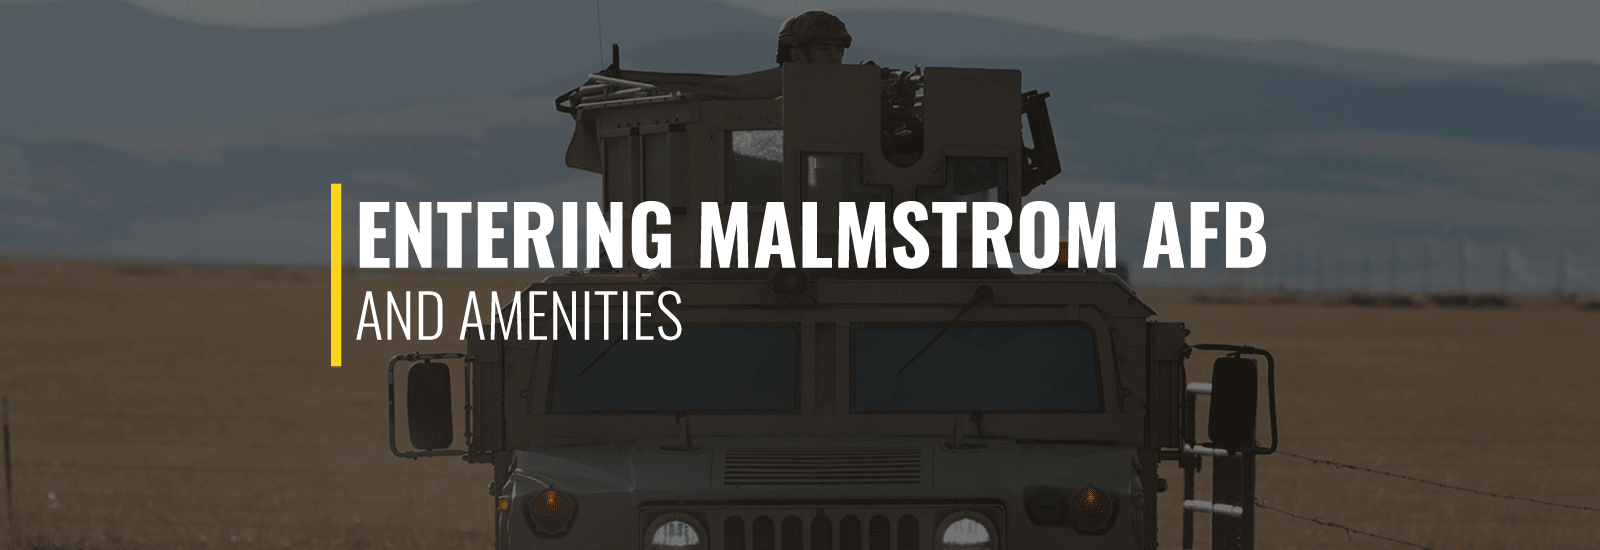 Entering Malmstrom Air Force Base and Amenities